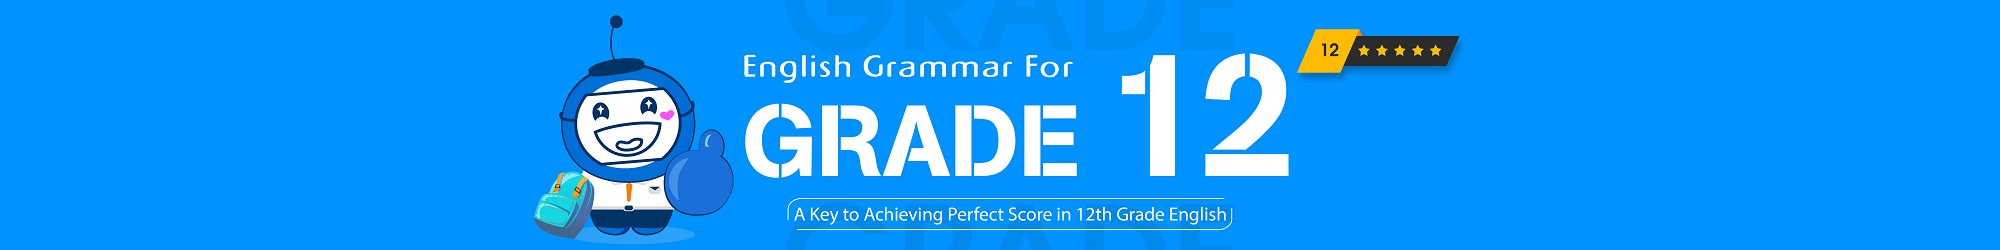 GRAMMAR FOR 12TH GRADE banner